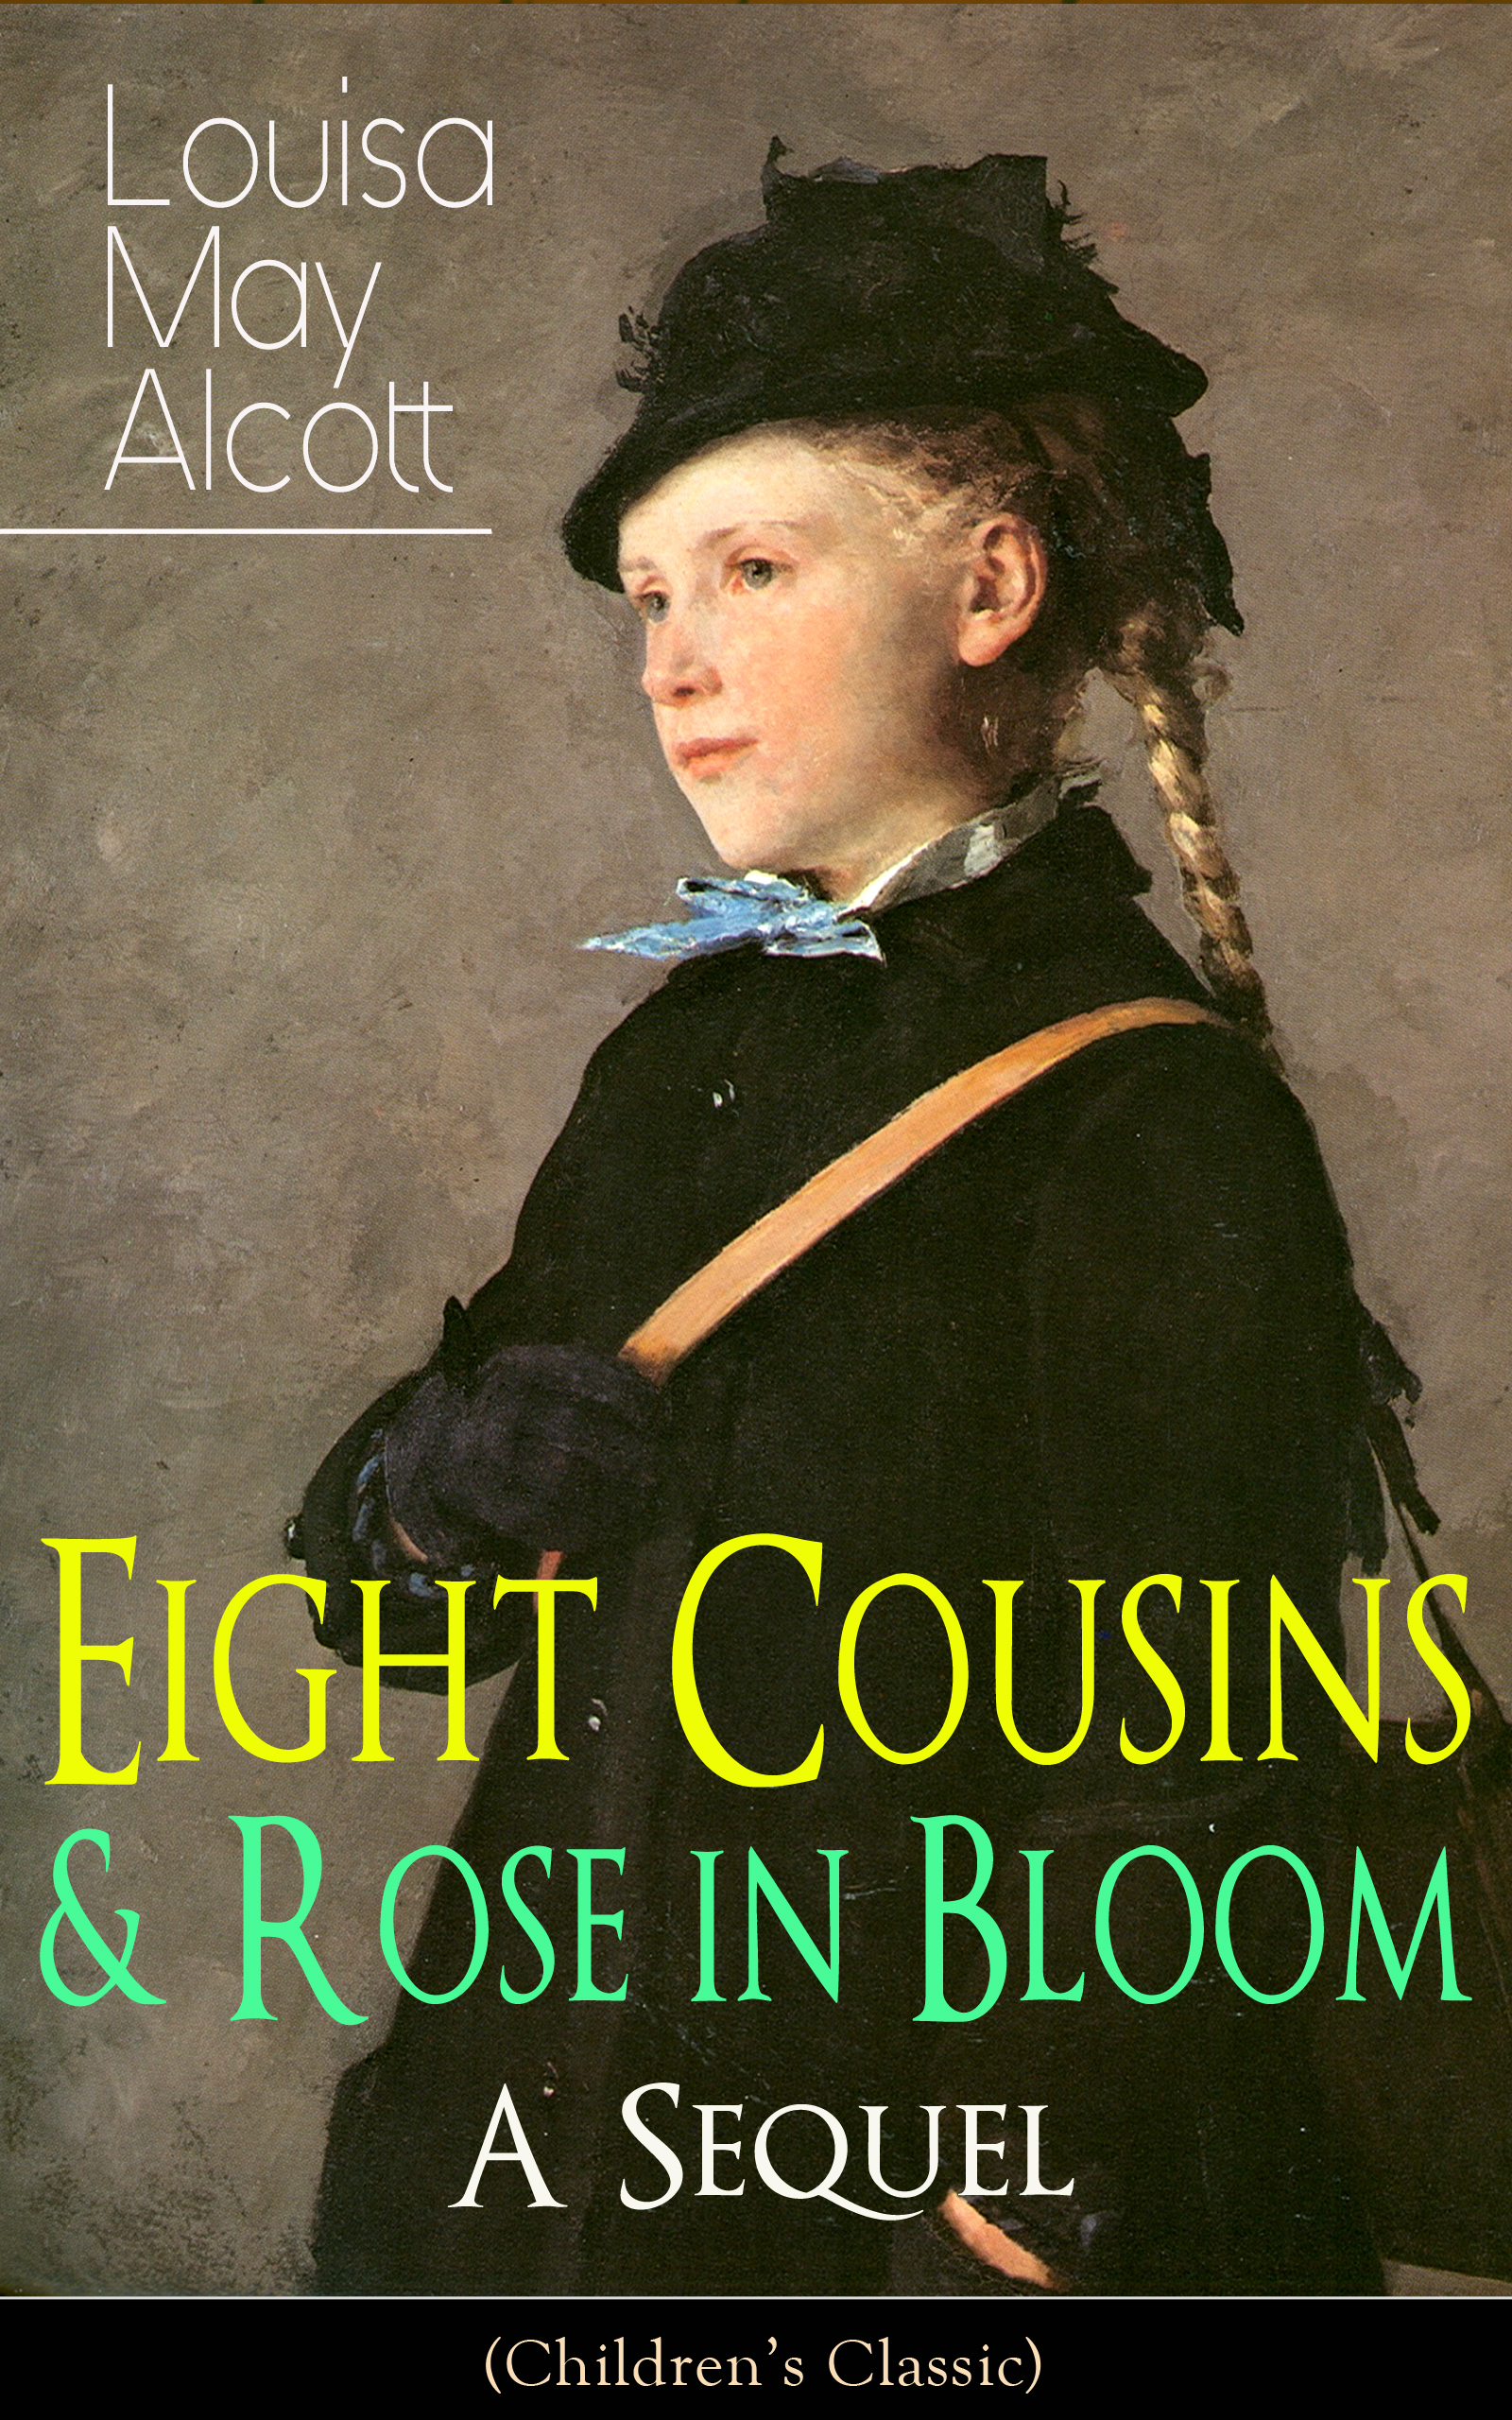 цена Луиза Мэй Олкотт Eight Cousins & Rose in Bloom - A Sequel (Children's Classic) онлайн в 2017 году